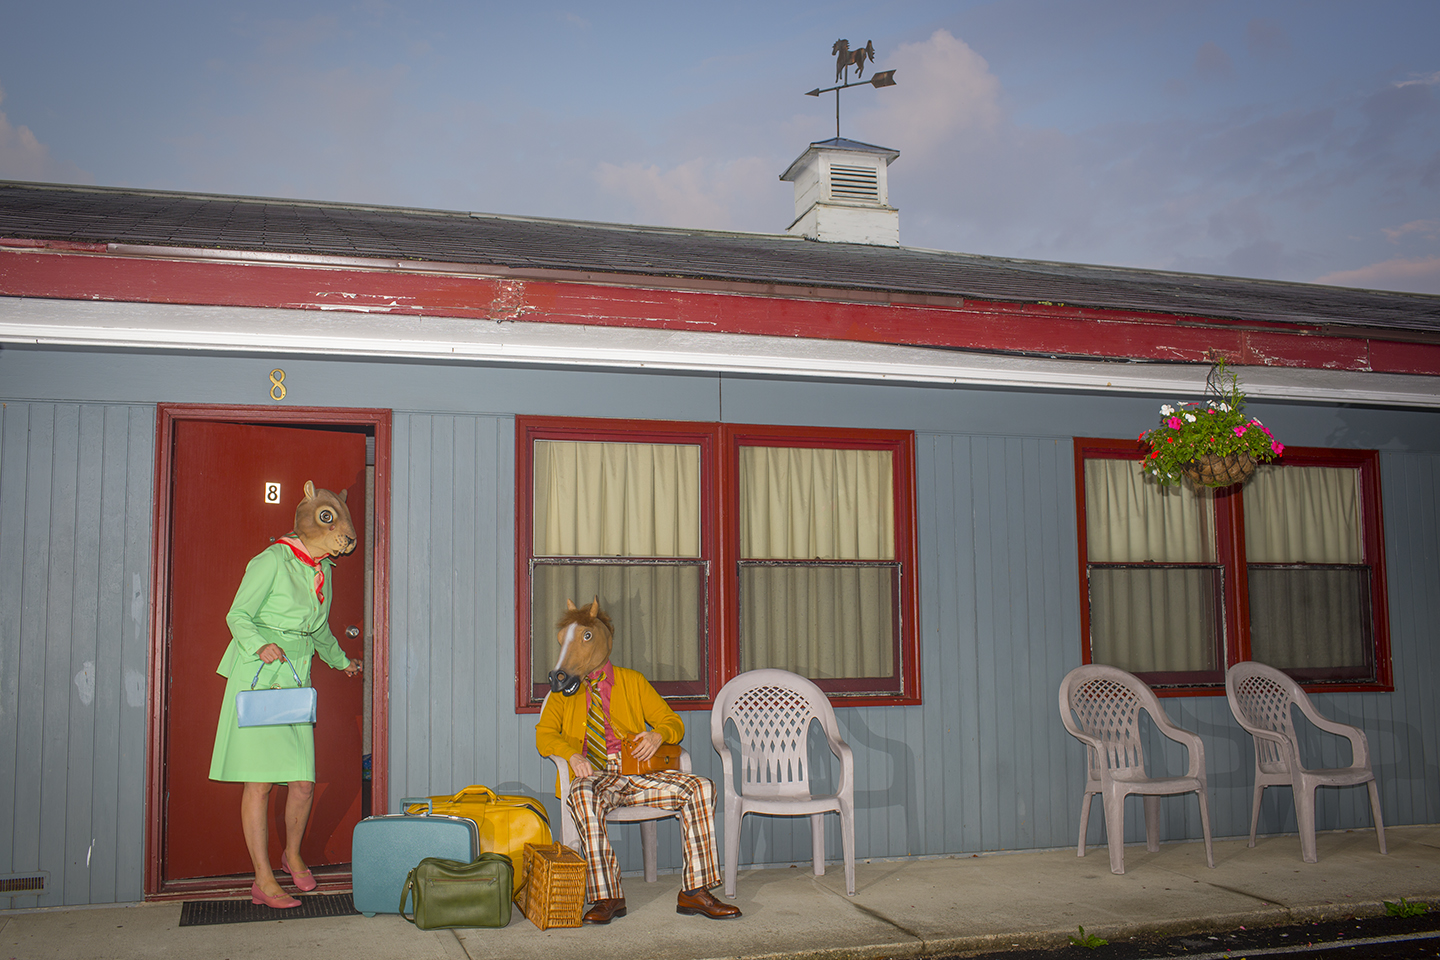 "Horace and Agnes: Pleasant Valley , digital archival inkjet print, 13"" x 19"", $285"